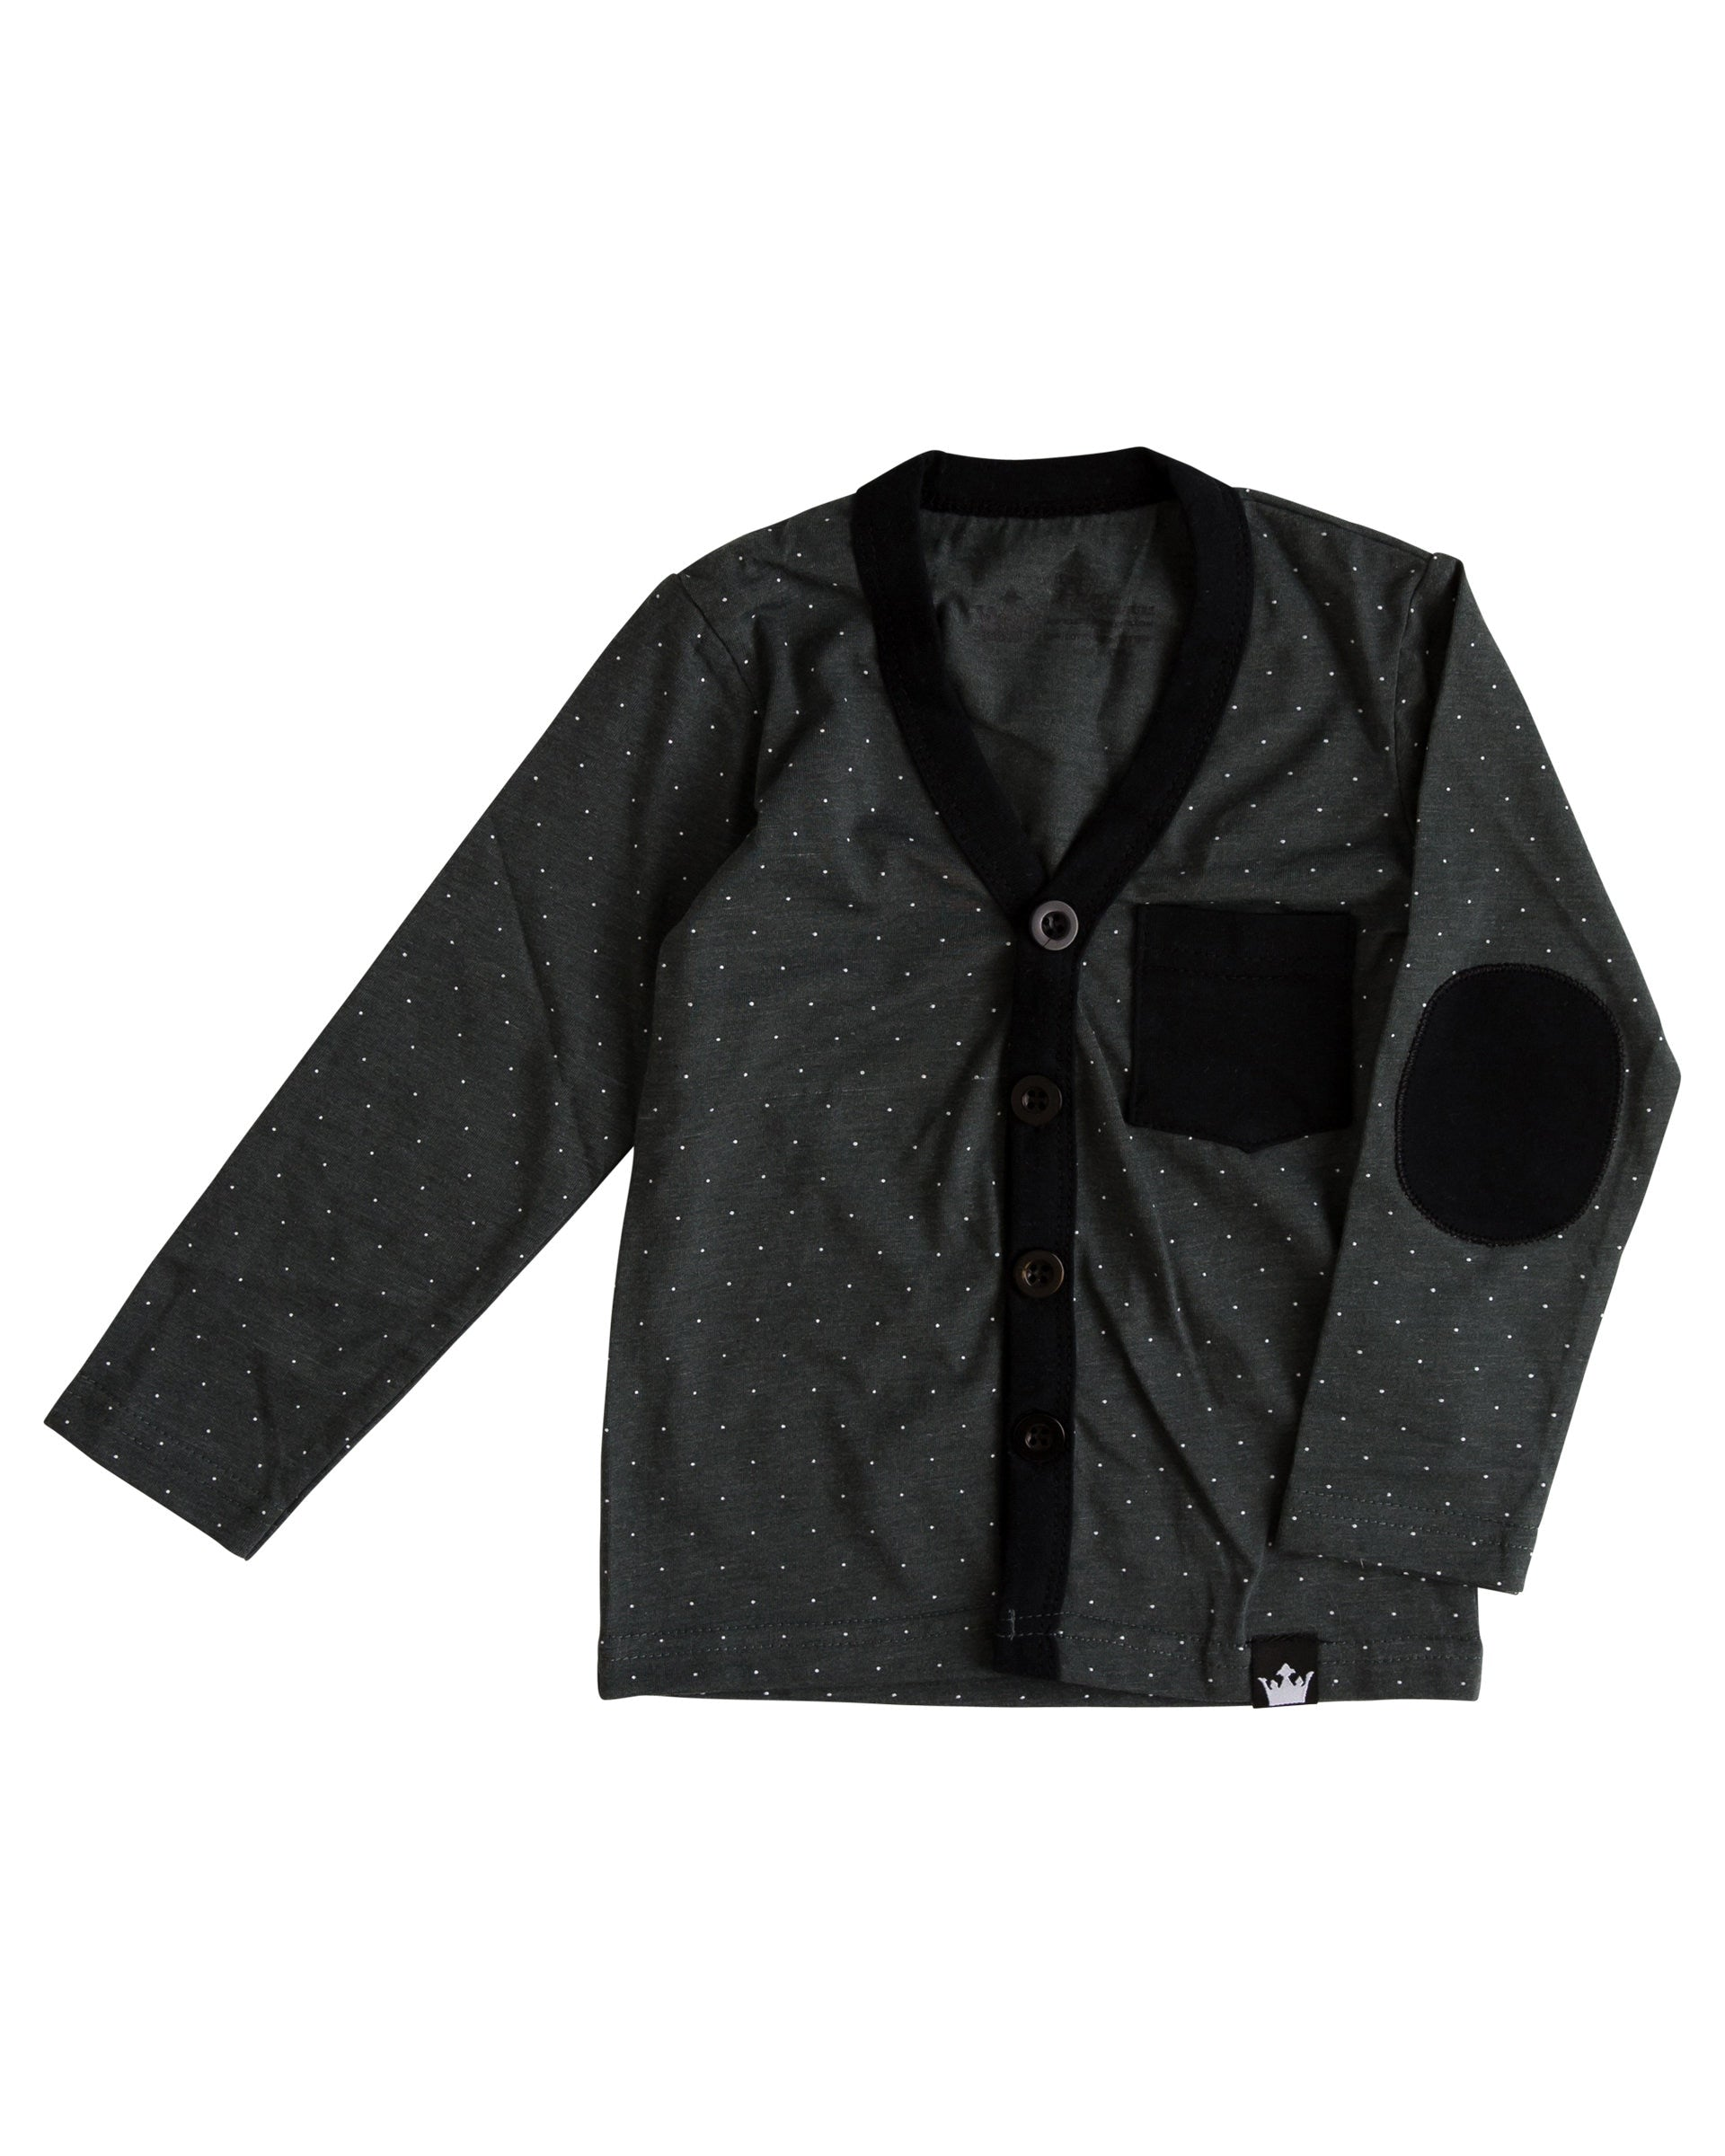 lscars-cd-charcoal-dots-cardigan-shirt-front.jpg